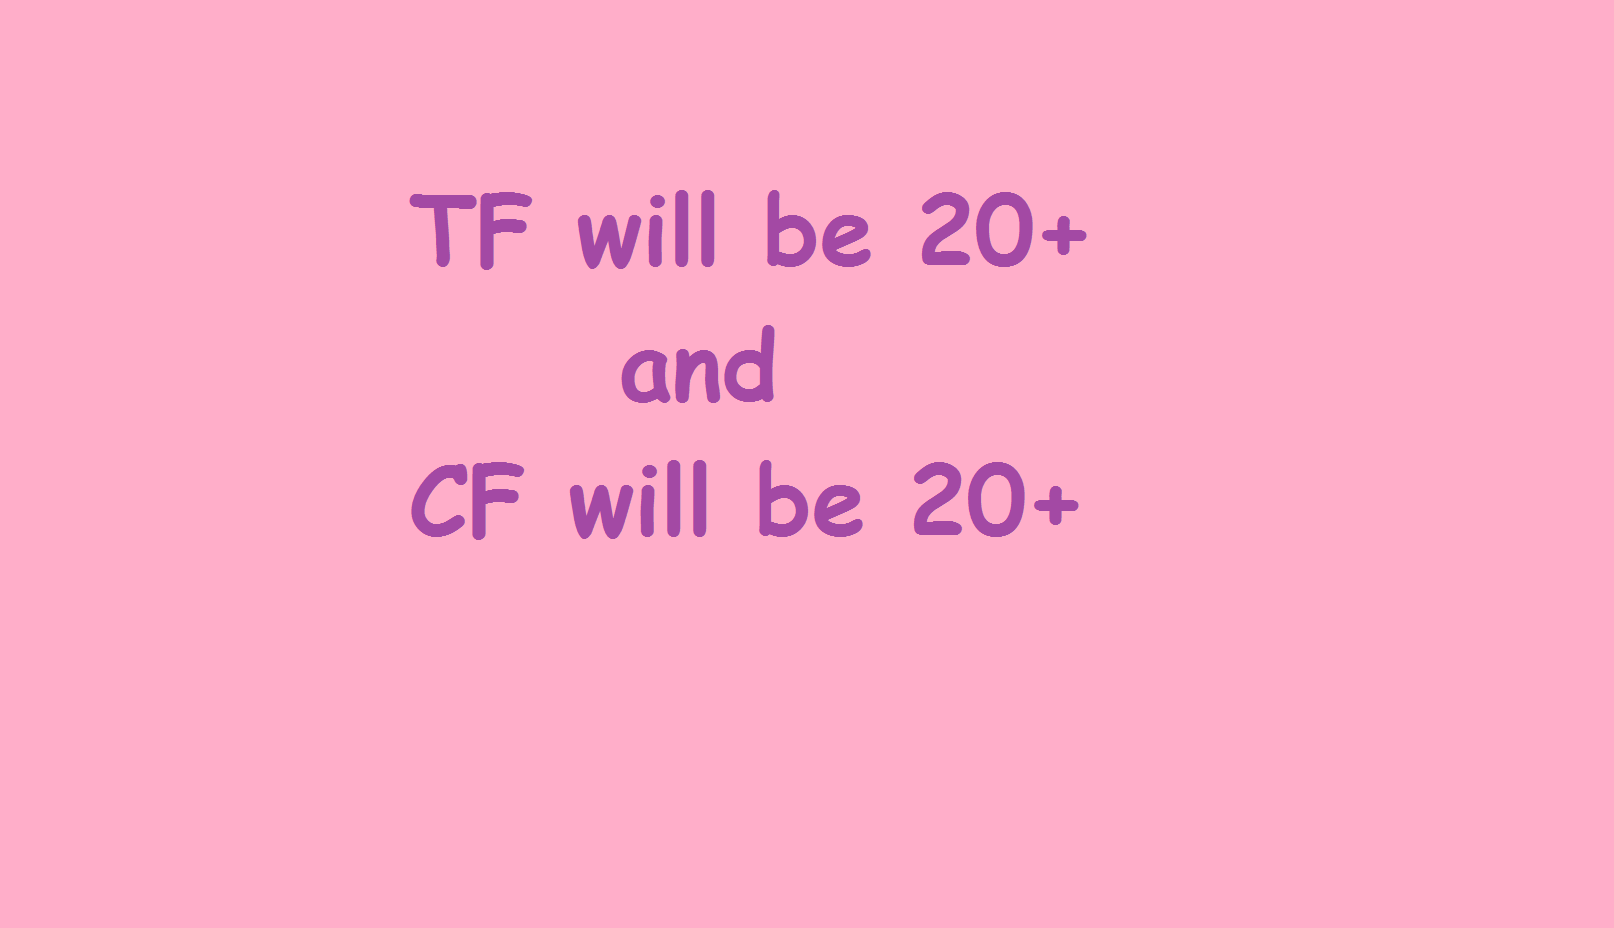 increase the height of TF and CF to 20+